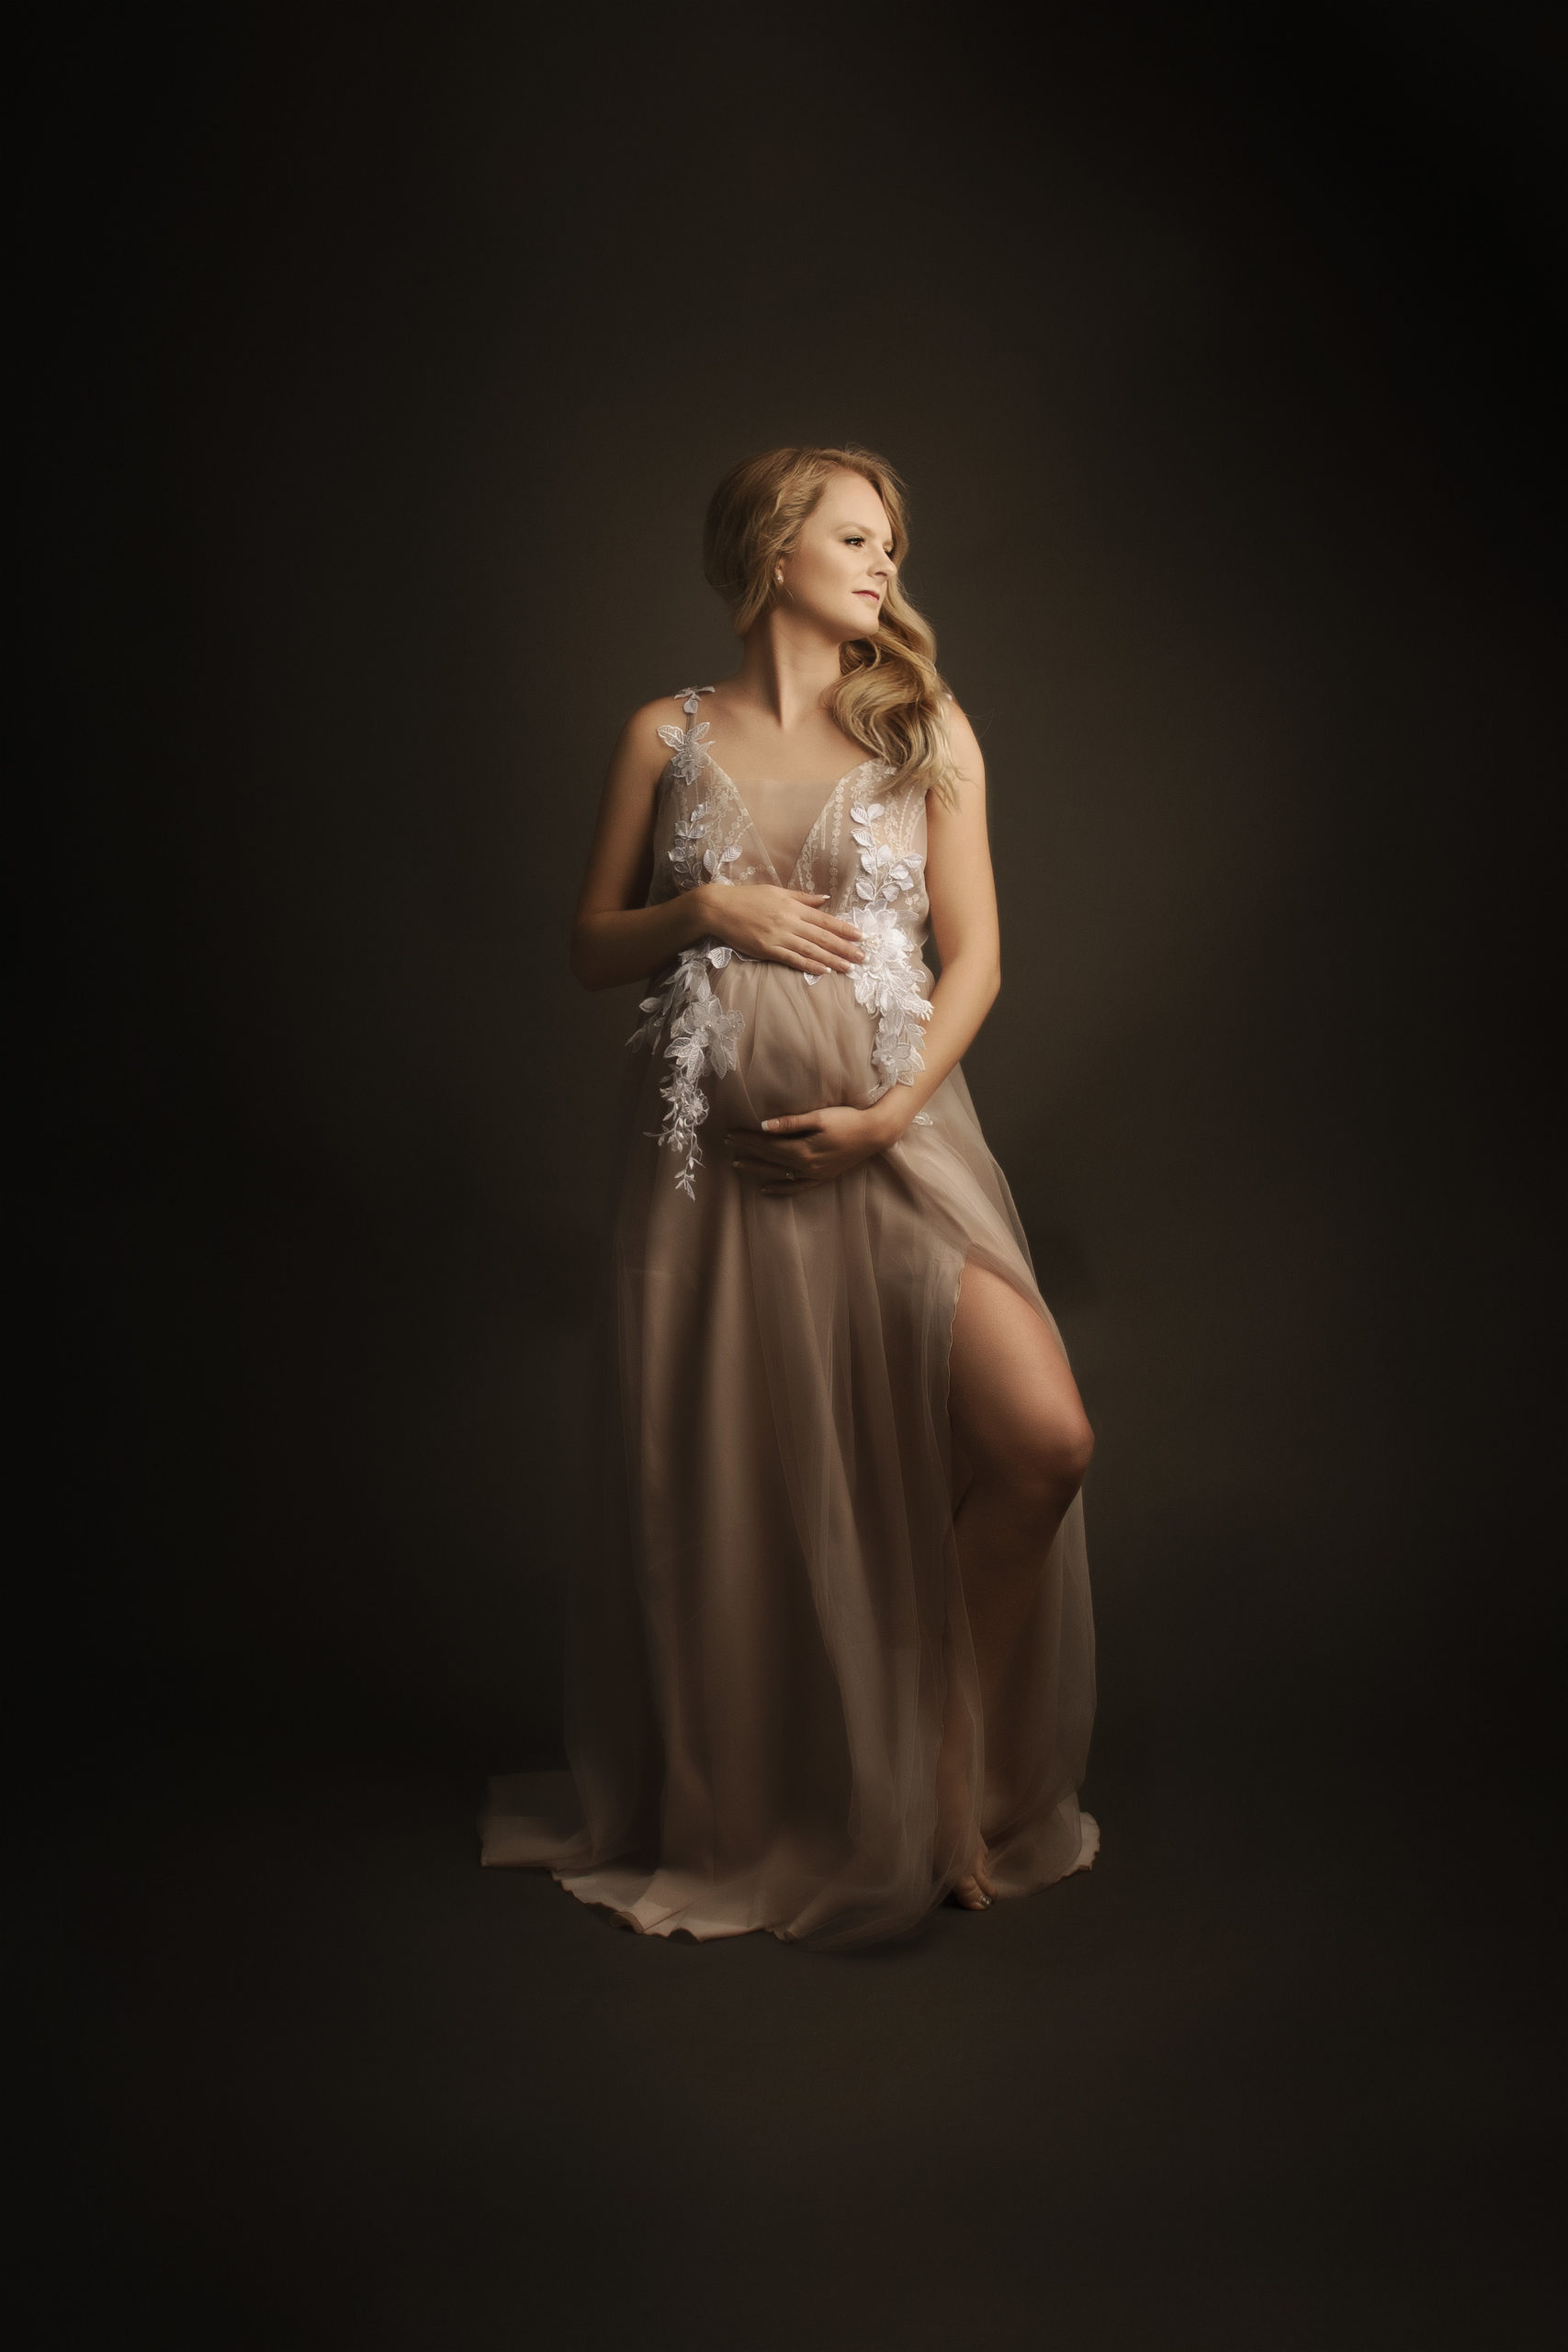 grand rapids michigan maternity fine art shoot mother with custom gown